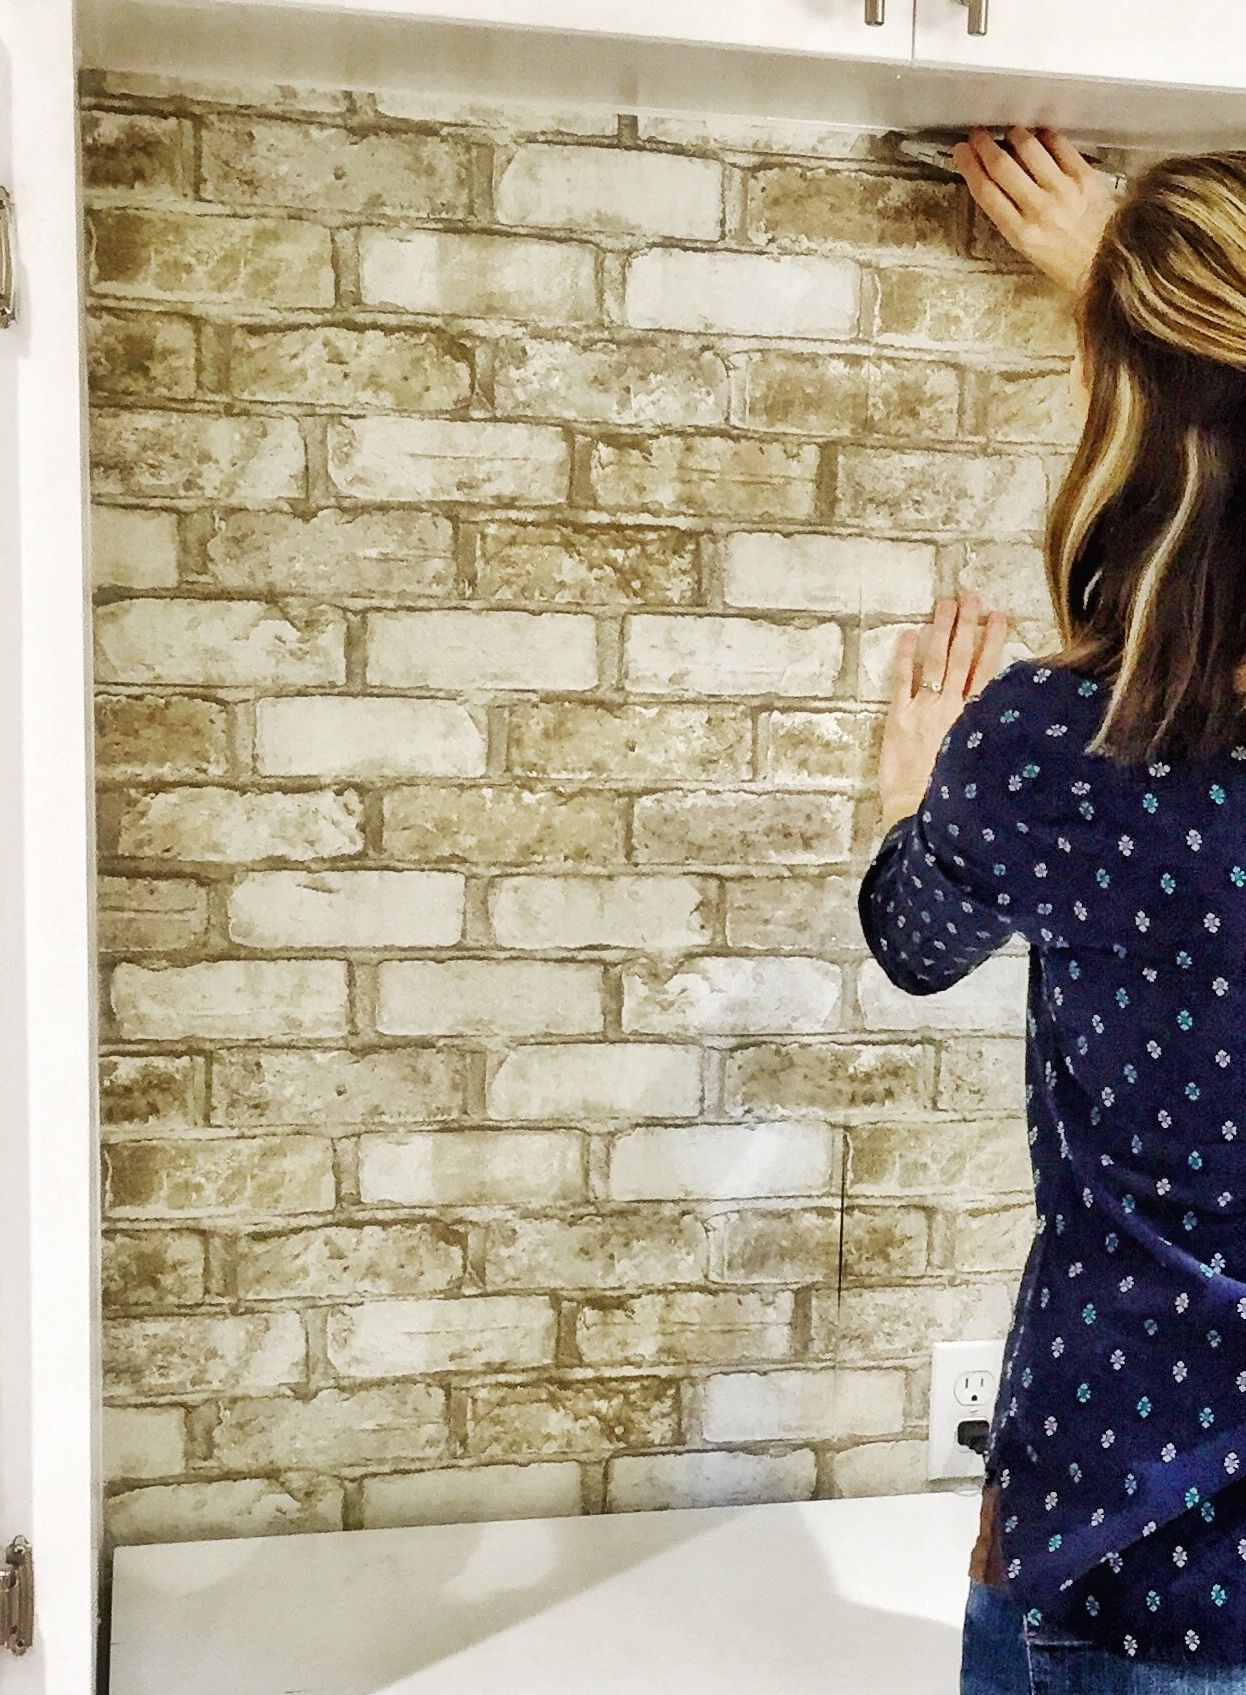 How To Apply Wallpaper Peel And Stick Vs Regular Wallpaper How To Apply Wallpaper Peal And Stick Wallpaper Peel N Stick Wallpaper